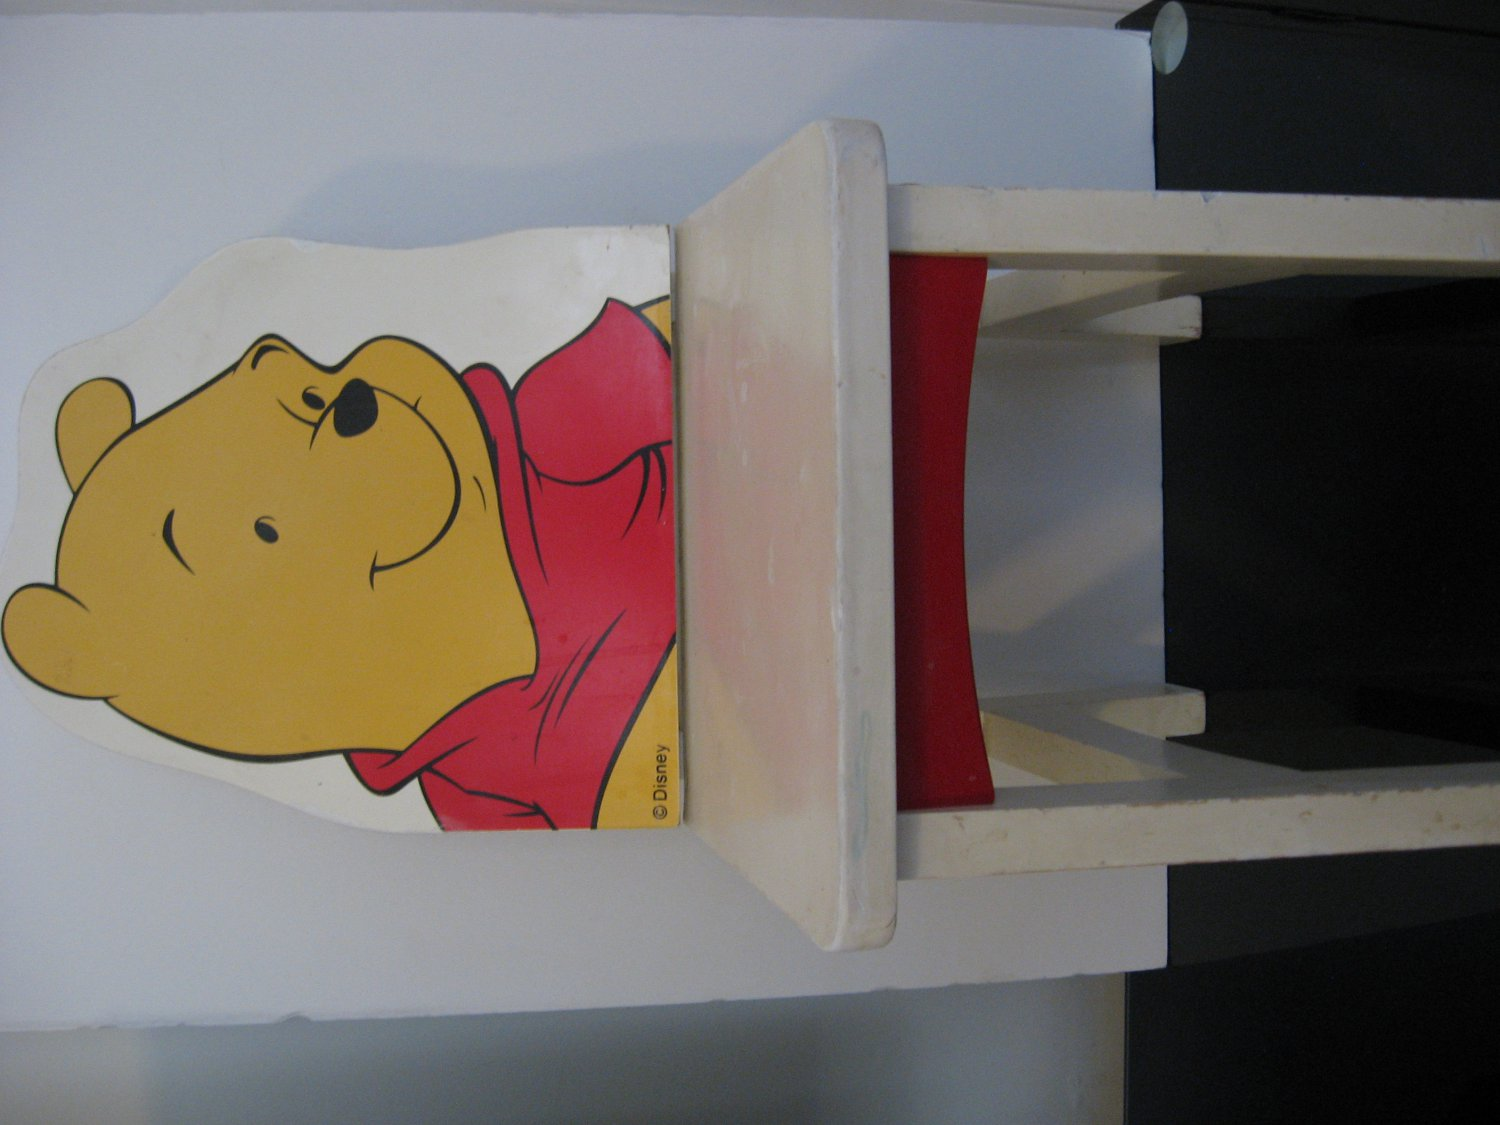 Vintage 1980's Disney Child's Chair - Winnie the Pooh - All Wood!